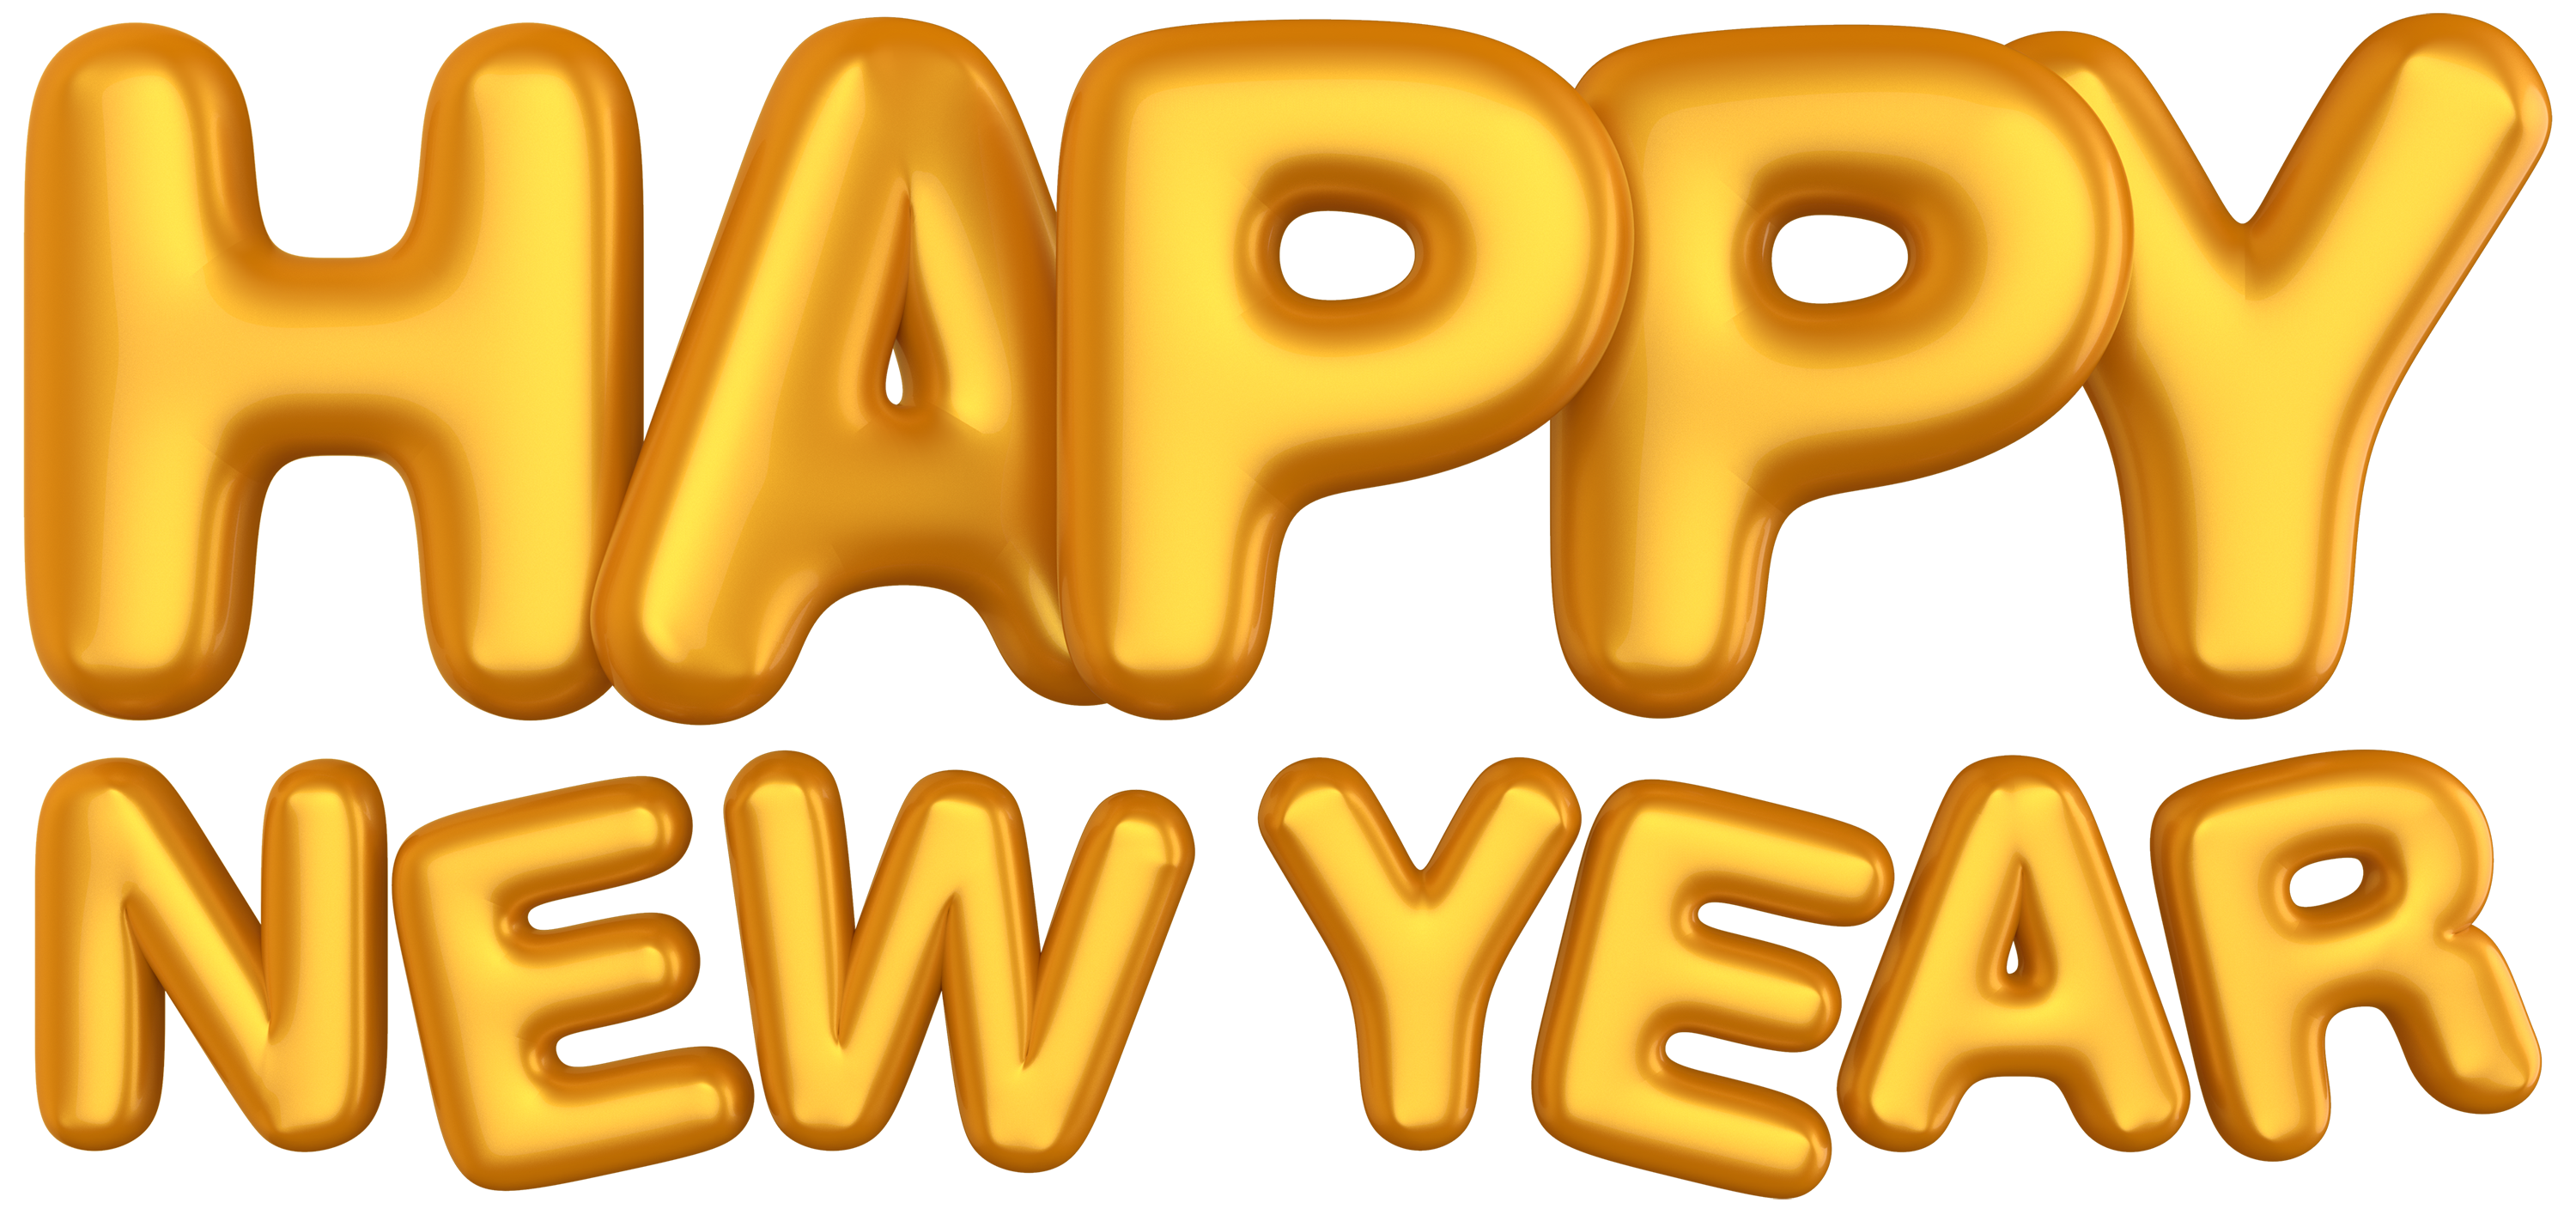 Transparent Happy New Year Png Free Transparent Happy New Year Png Transparent Images 15207 Pngio